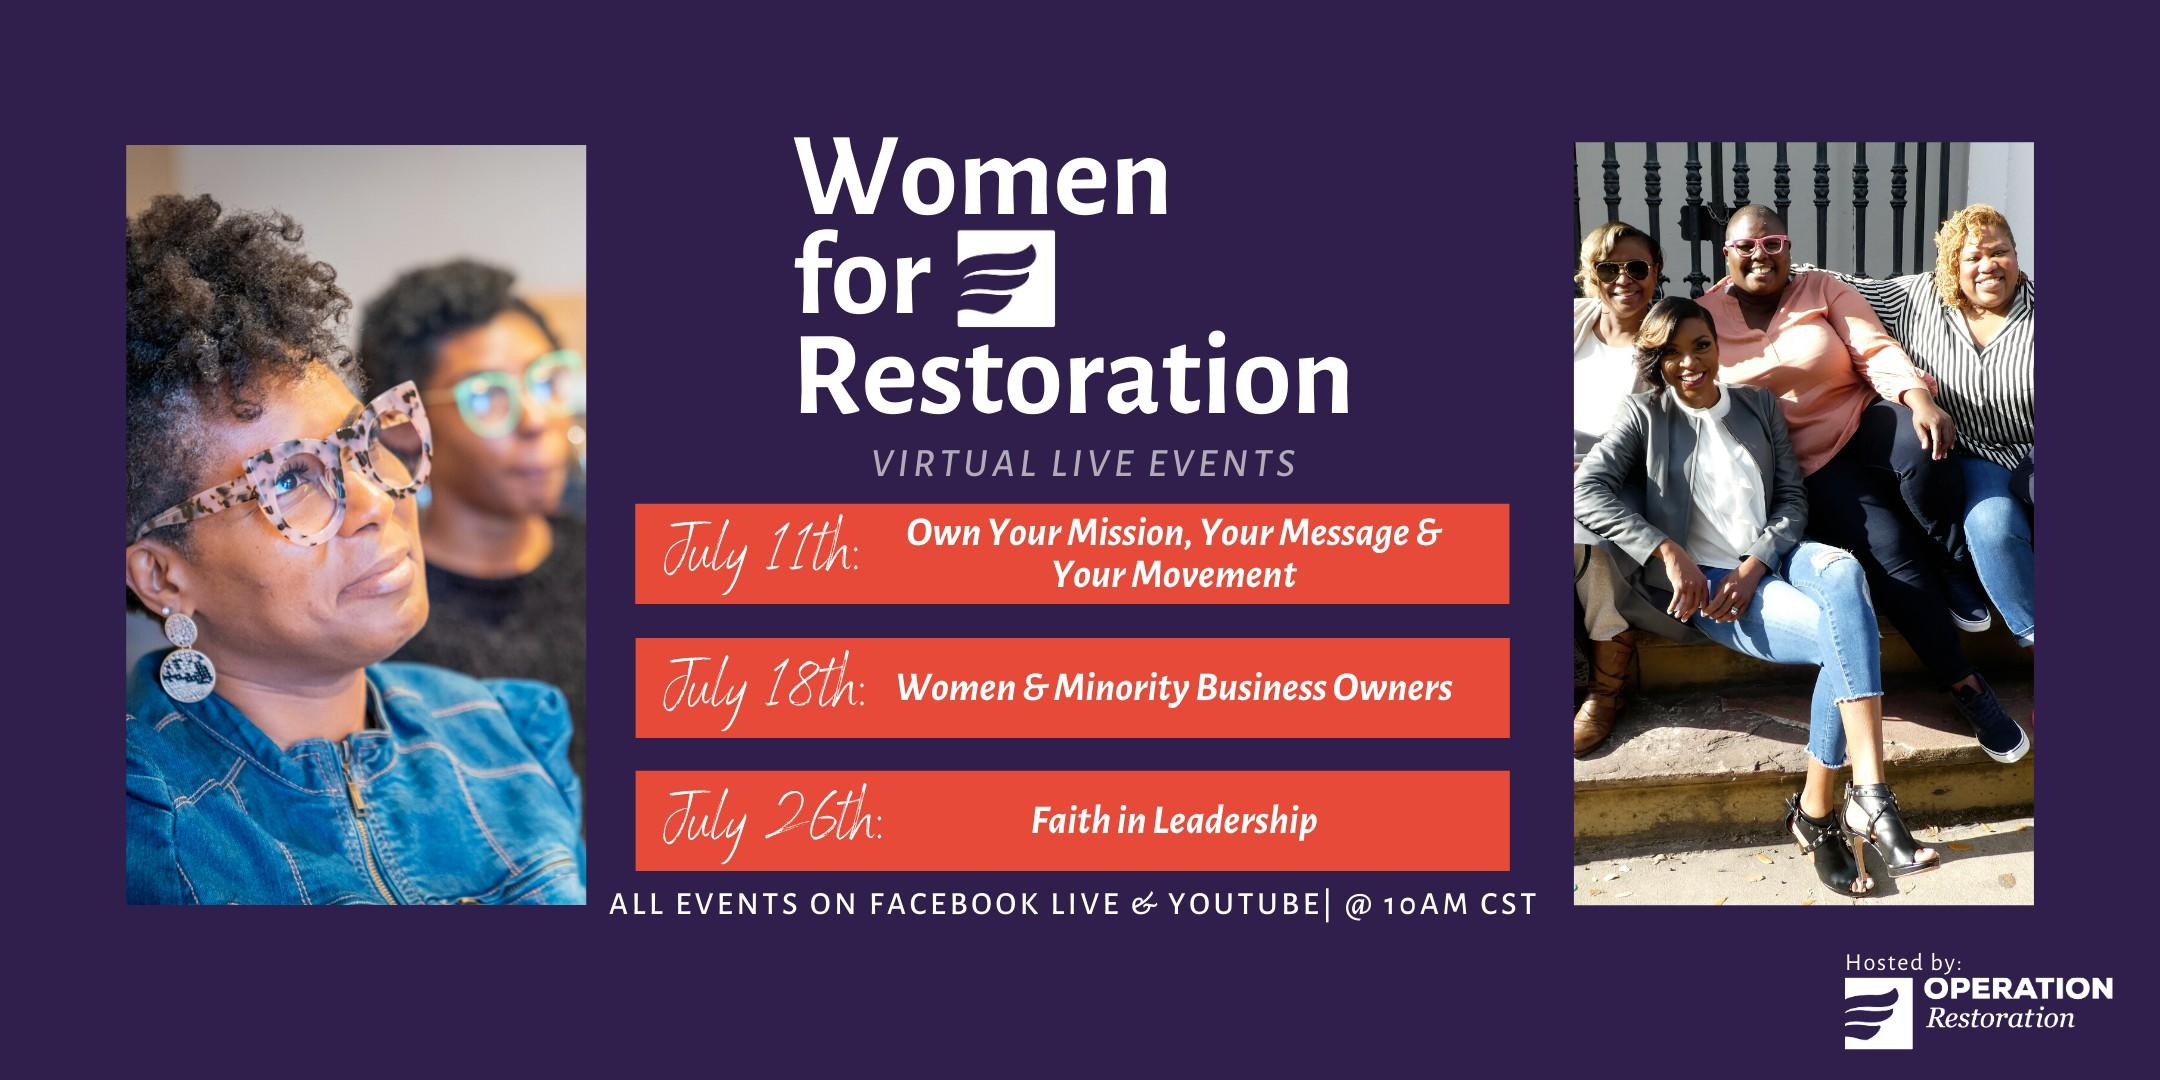 Women for Restoration for 2020 Independent Presidential Candidate